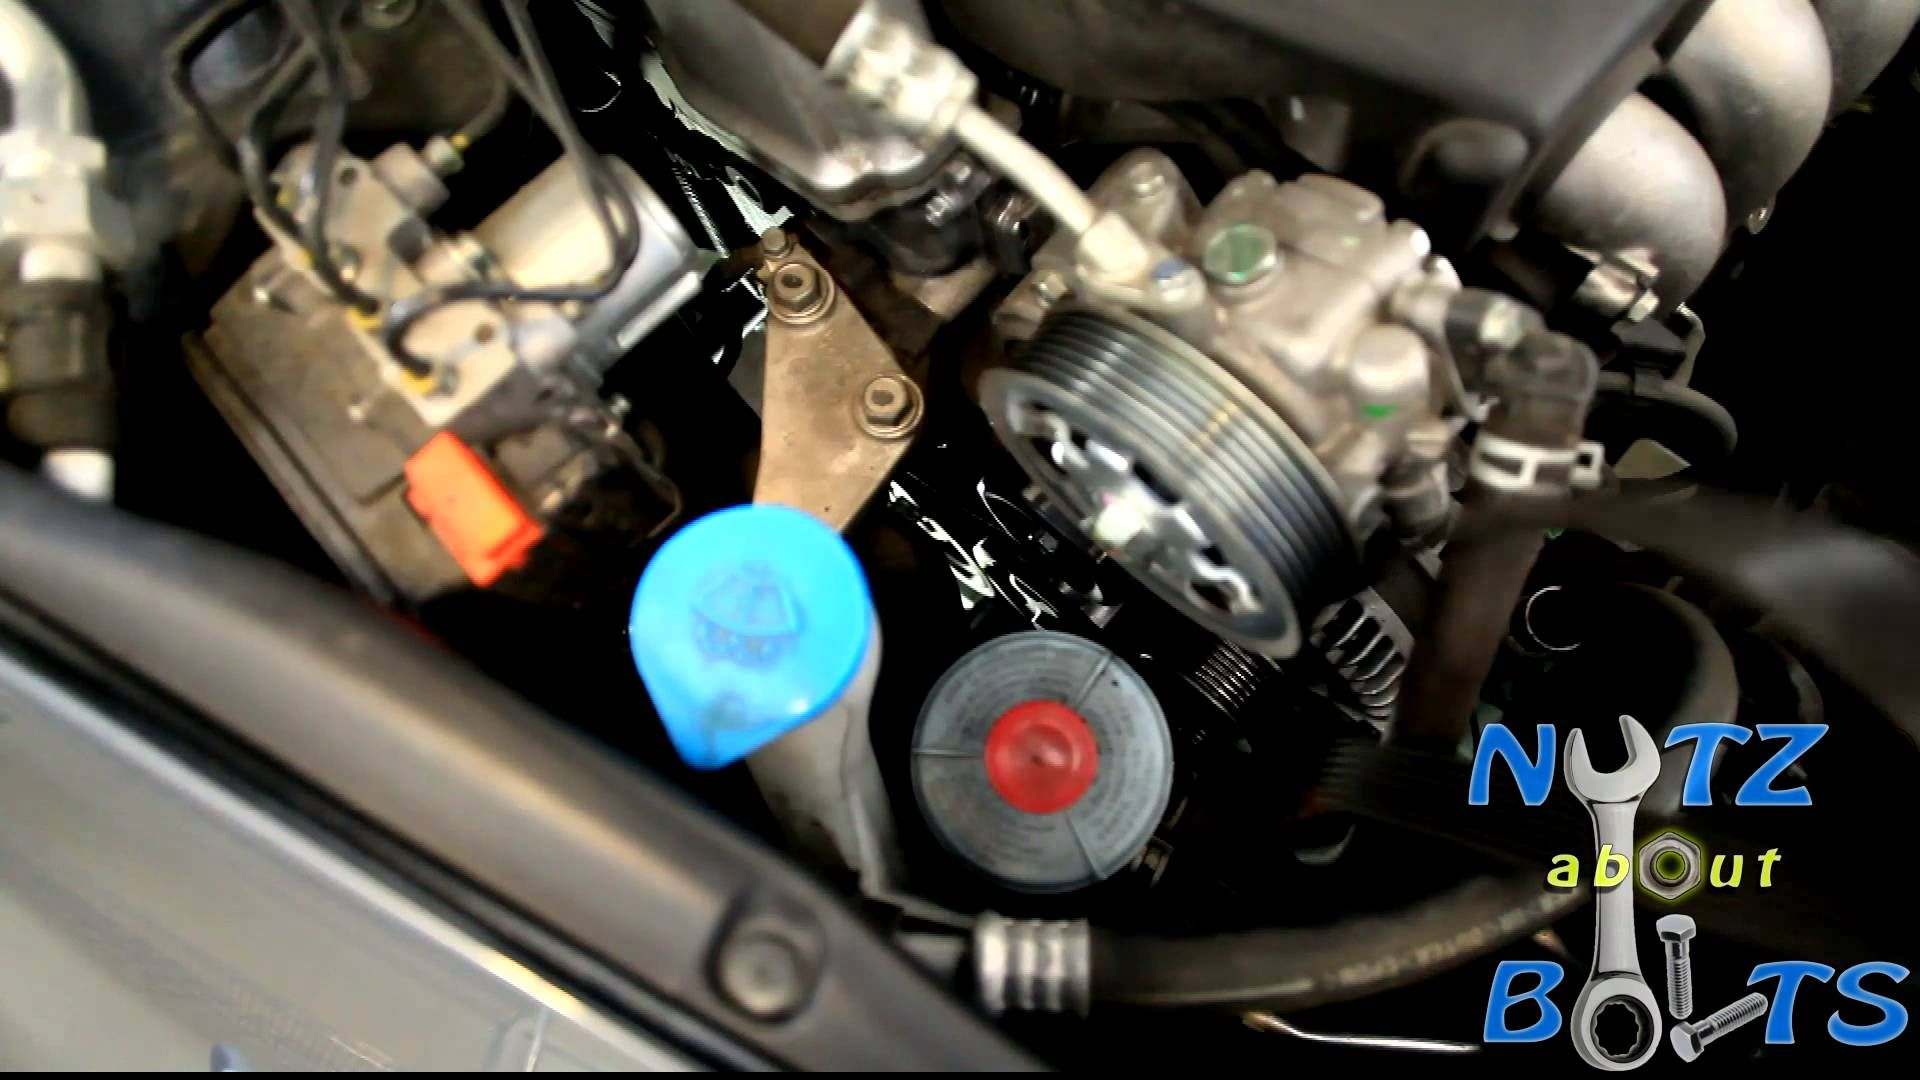 Image Result For 2012 Ford Fusion Serpentine Belt Diagram Ford Fusion Car Mechanic Ford